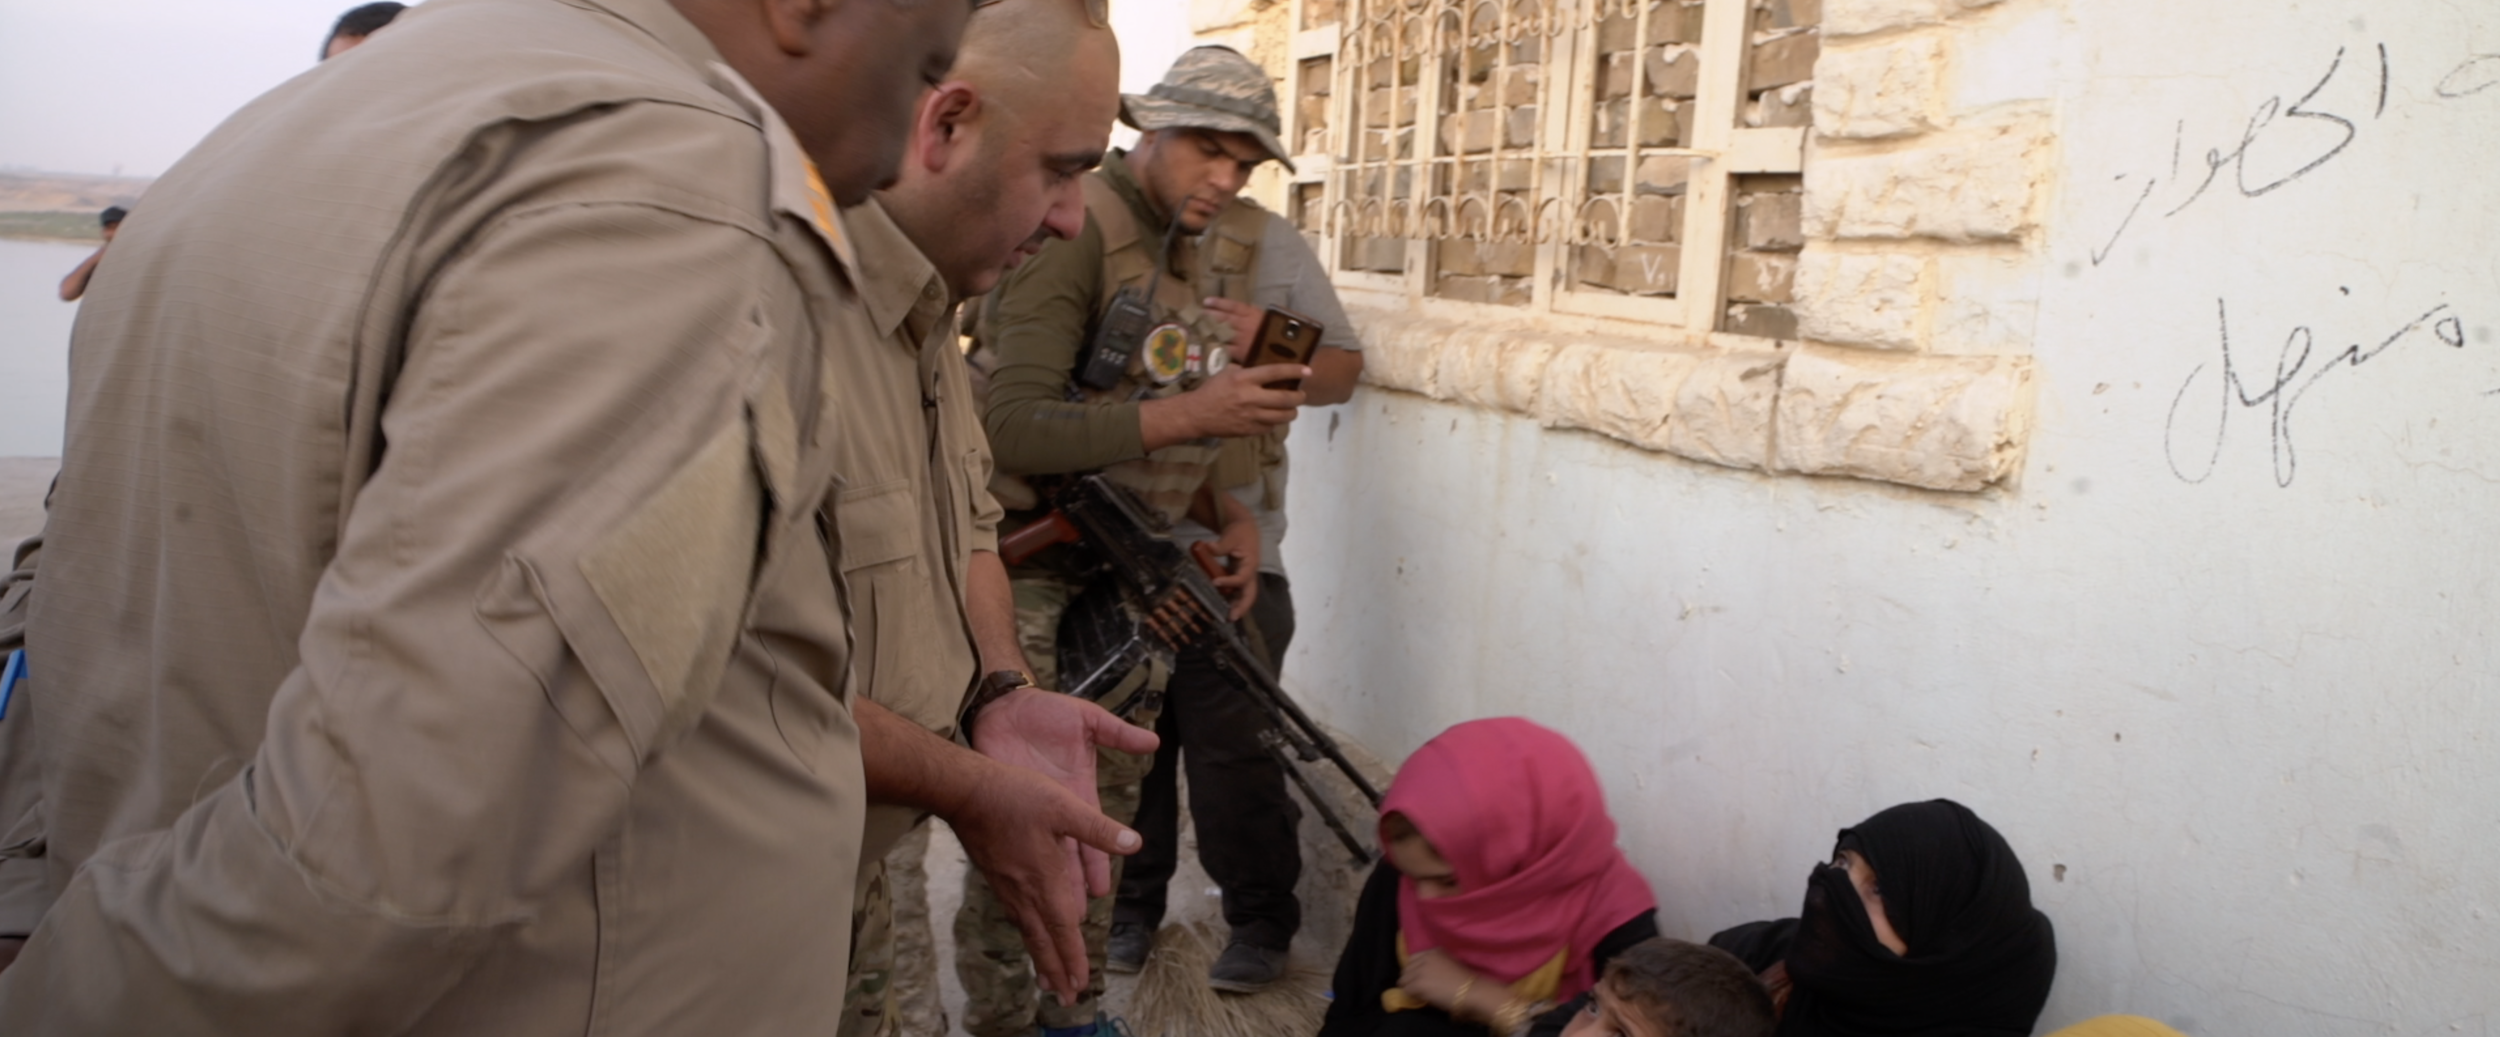 Women rescued from ISIS occupied region are questioned  .png